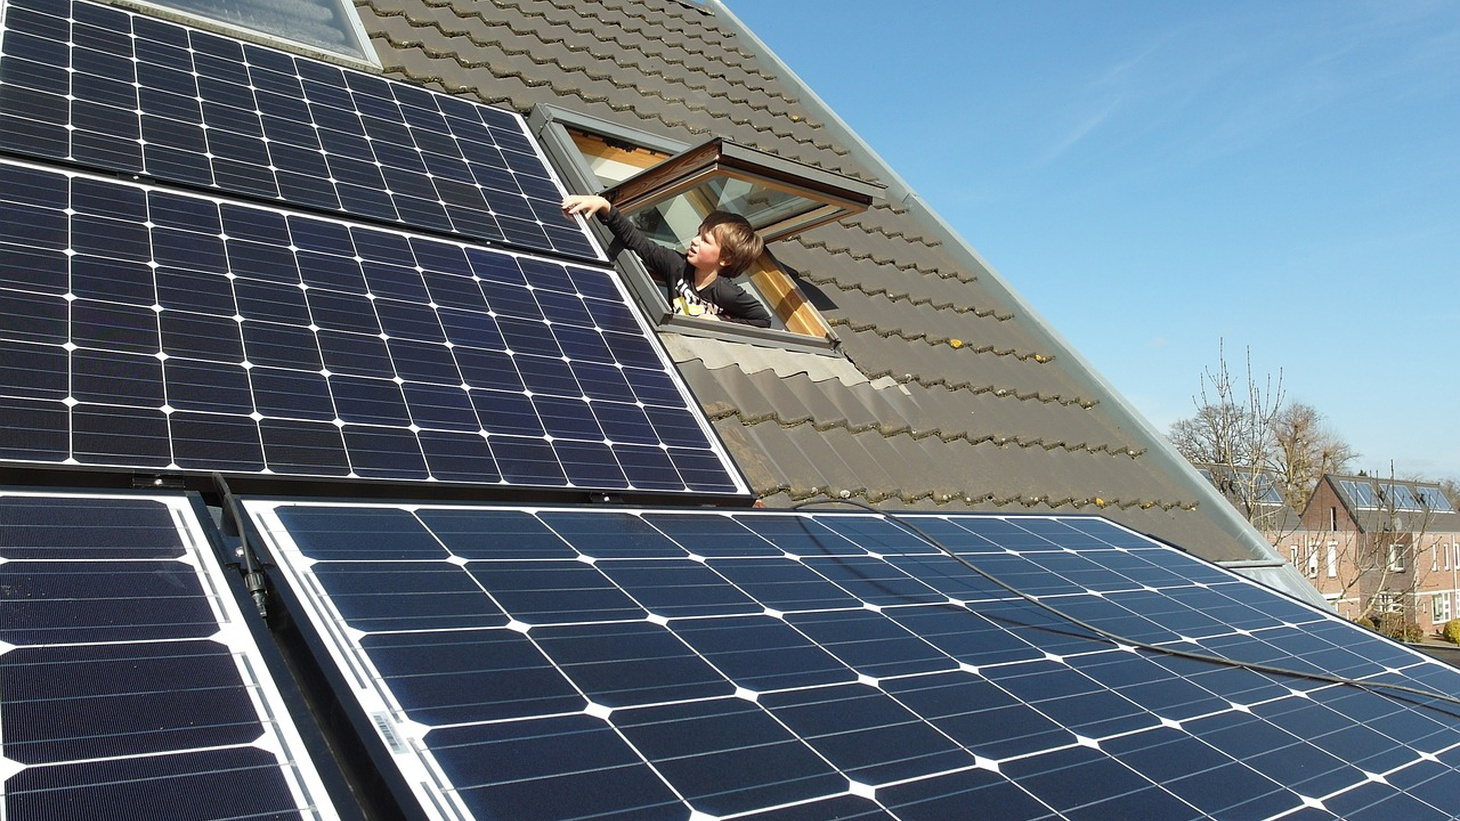 Starting in just two years, any new homes built in California will have to include solar panels and other energy-efficiency measures. Those are among the new energy standards that The California Energy Commission unanimously approved Wednesday.